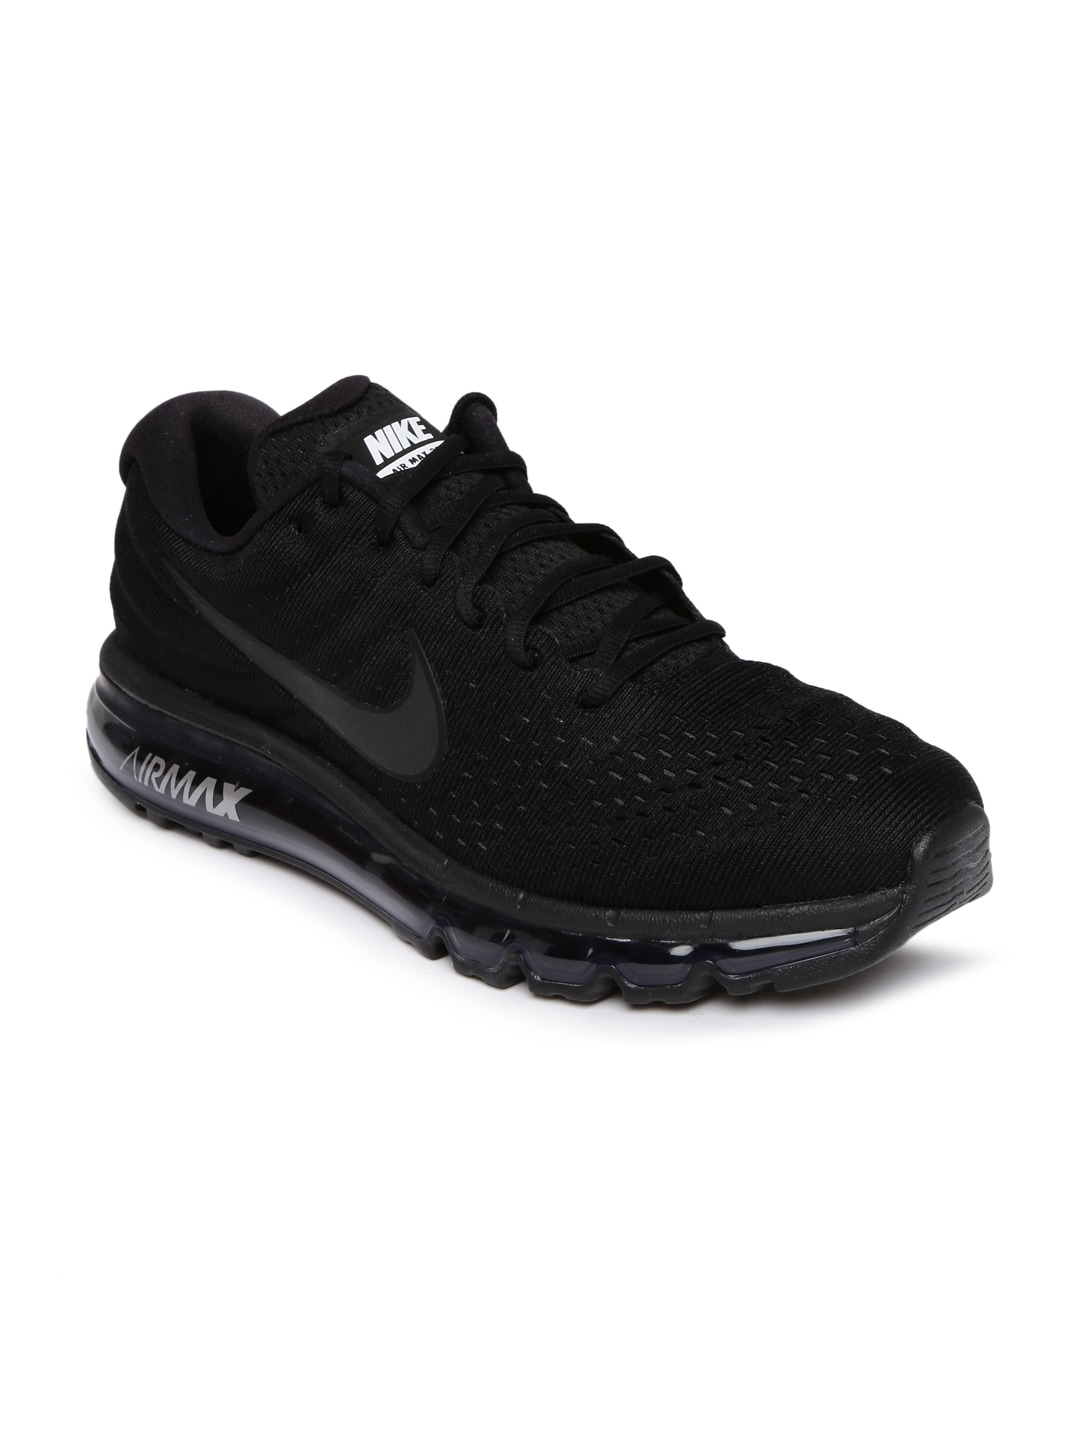 huge selection of 2b5b8 25ad0 Nike Air Max Black - Buy Nike Air Max Black online in India